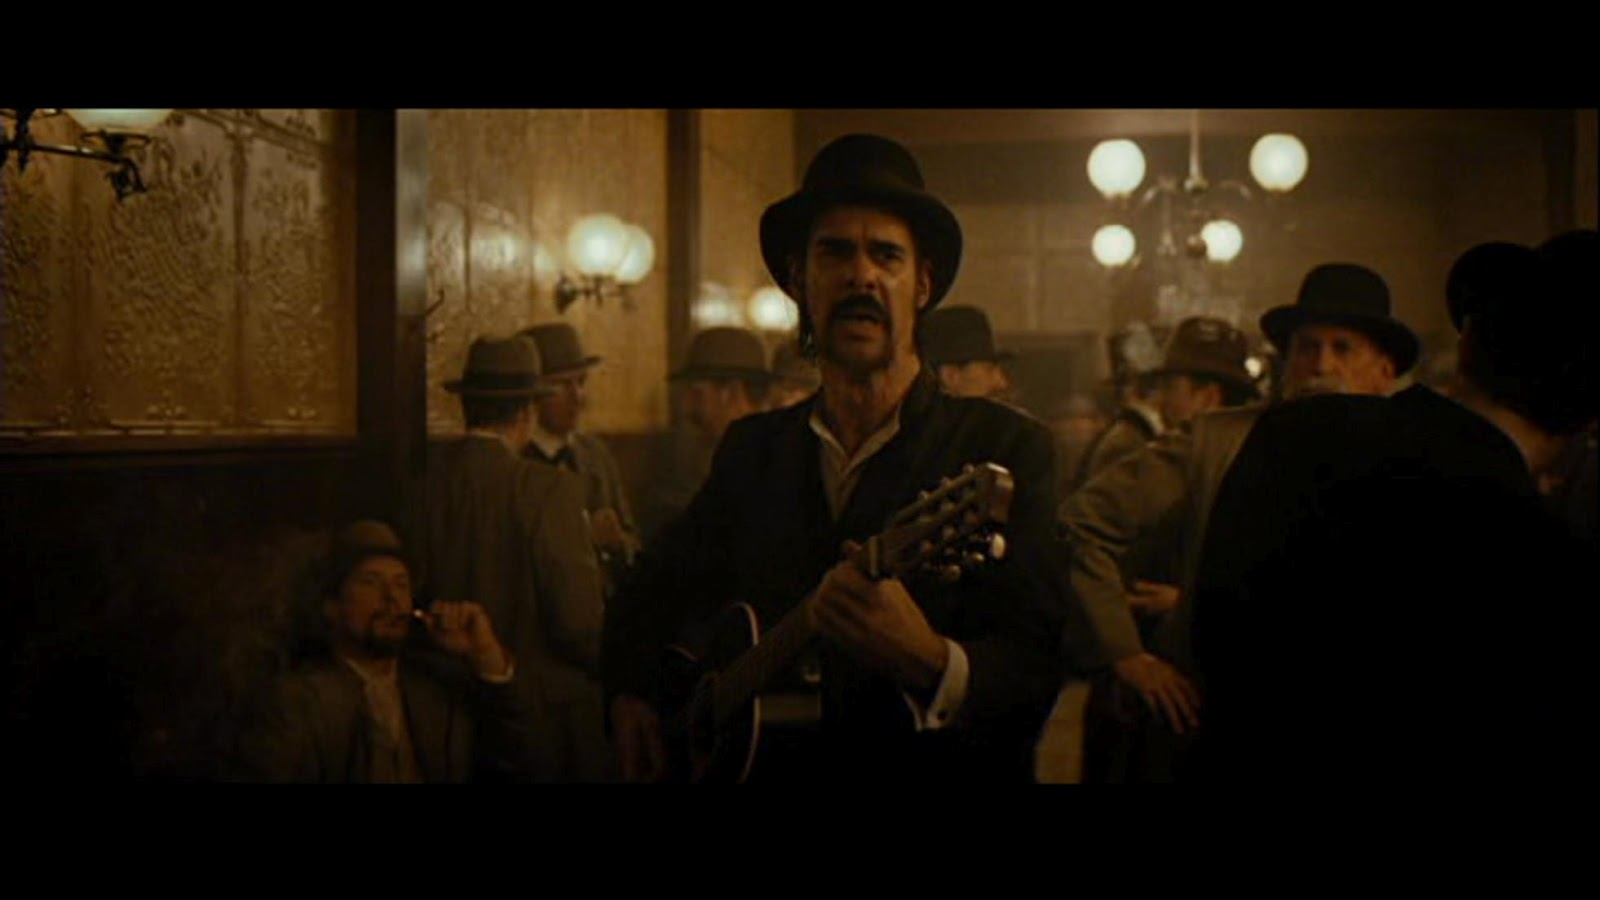 the assassination of jesse james essay In the assassination of jesse james by the coward robert ford, the  now's  the part of this essay where i start pulling apart little facets of this.